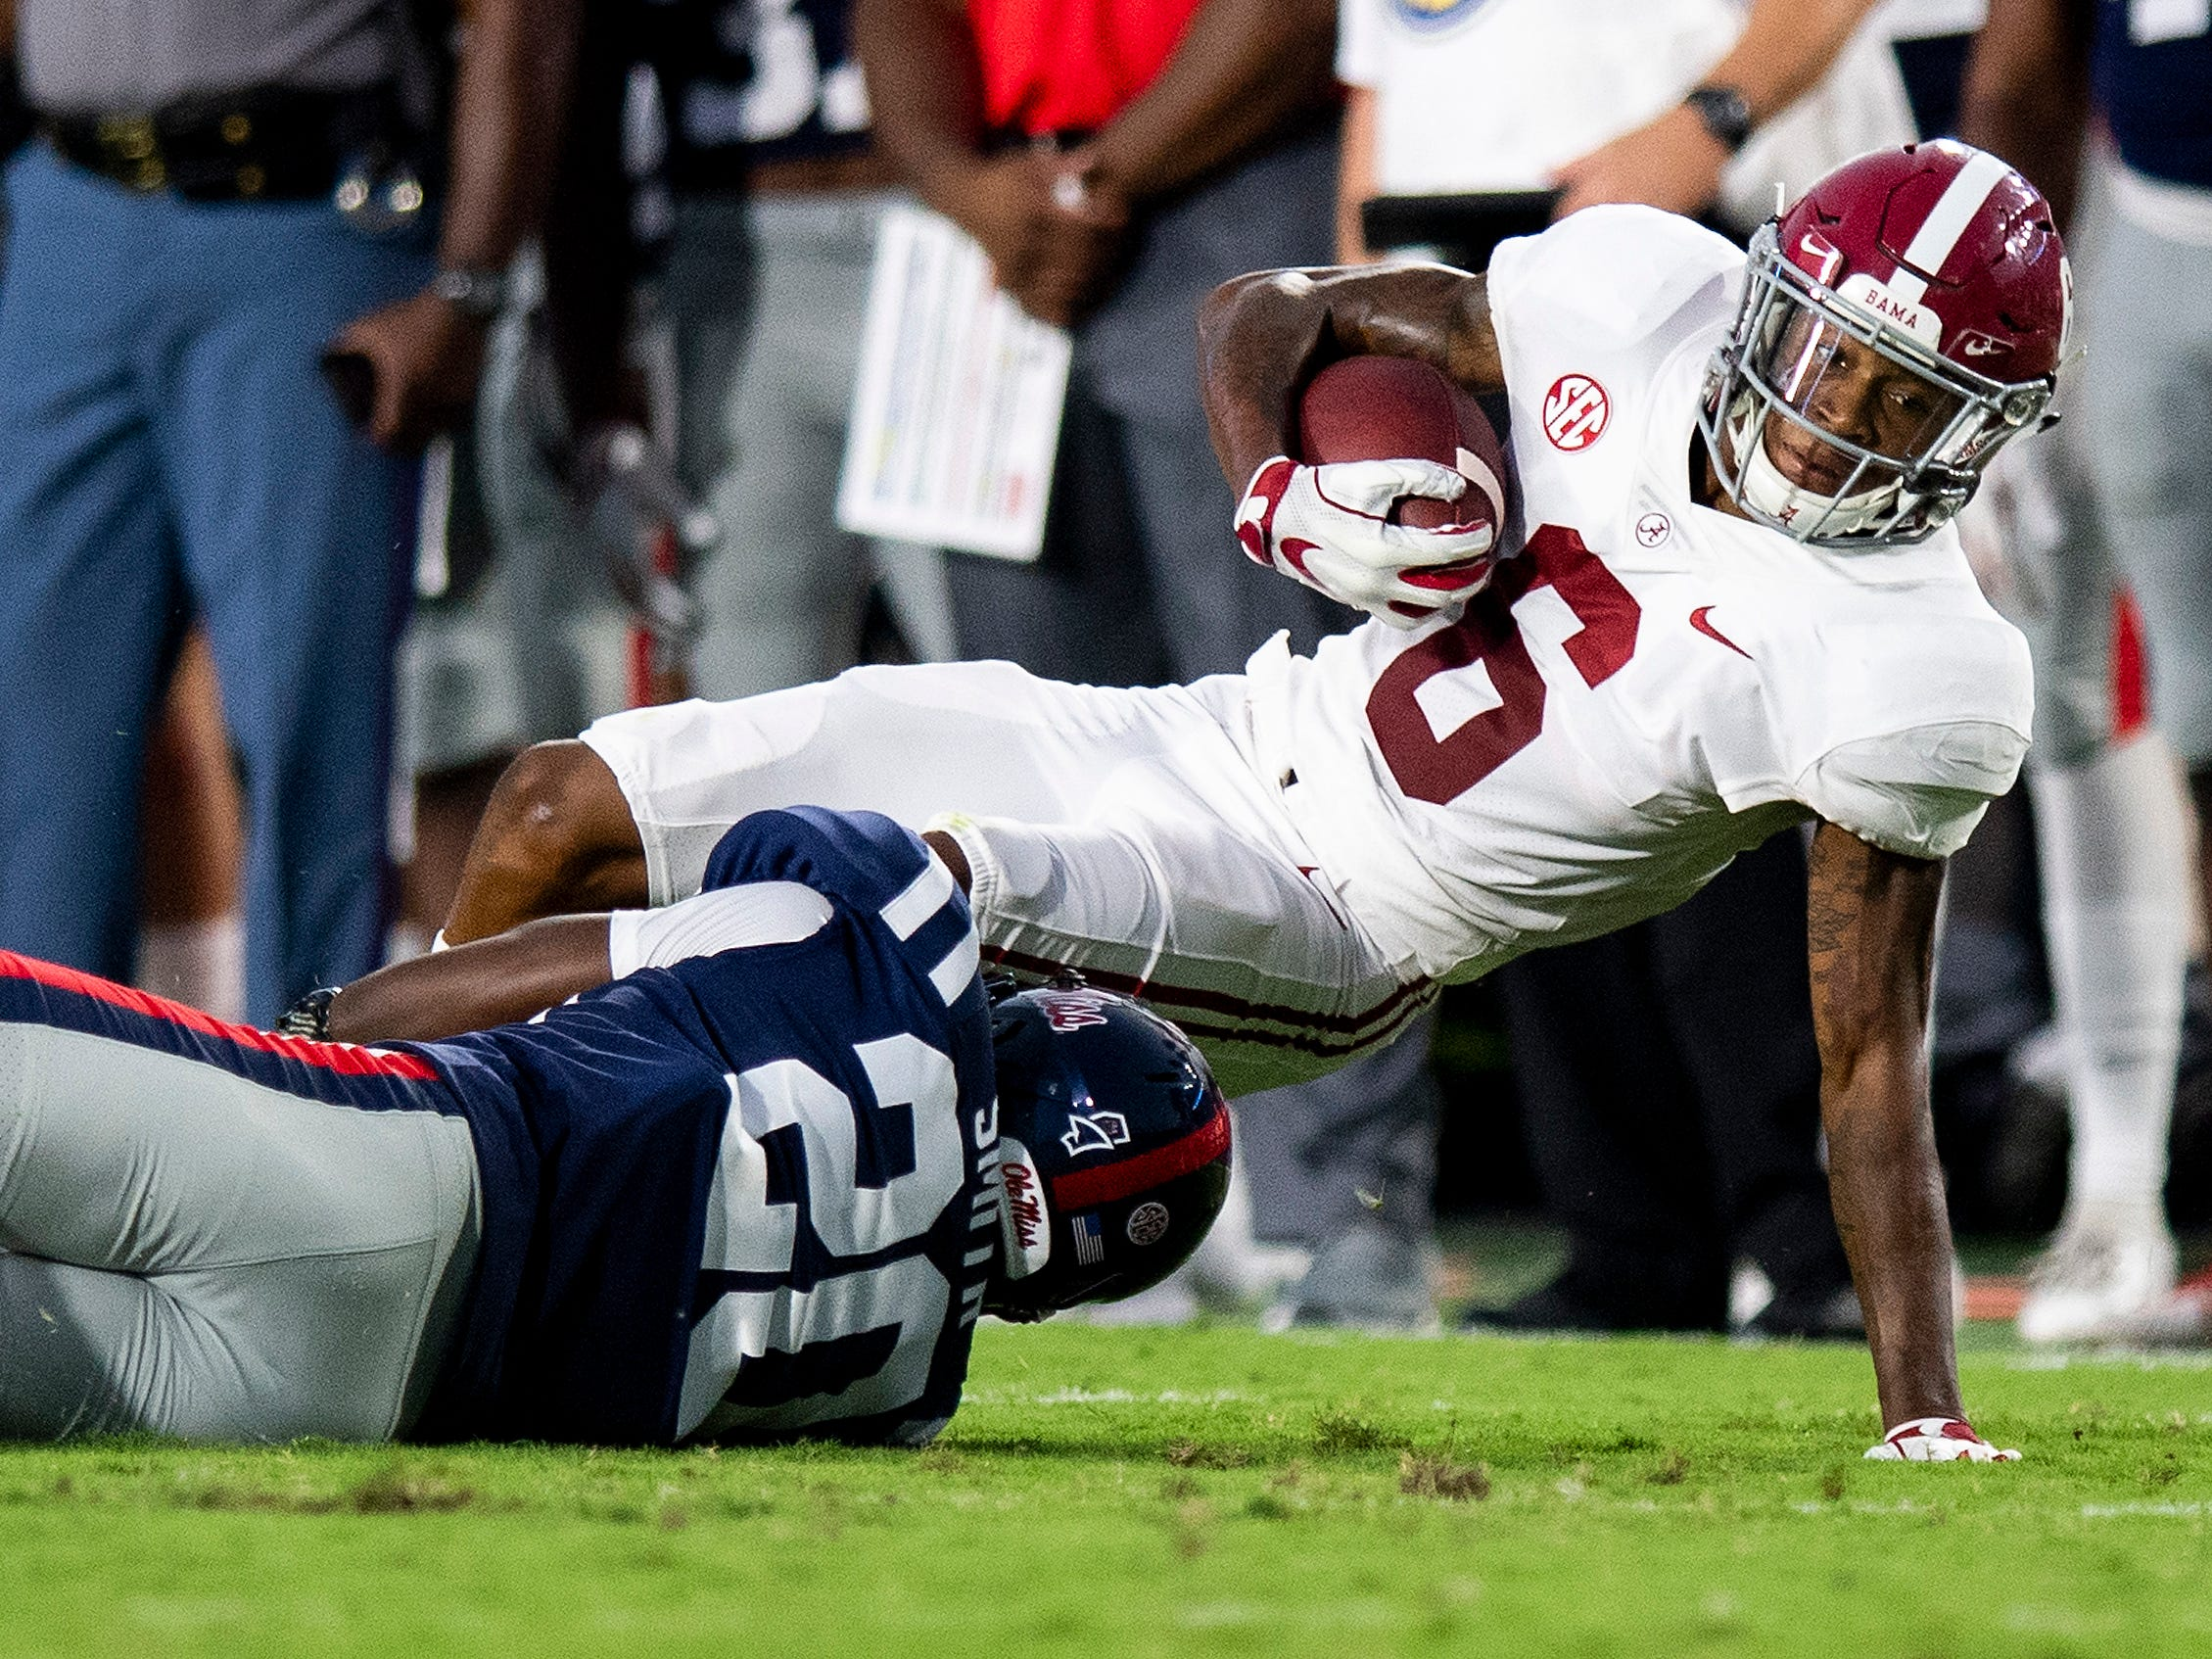 Alabama wide receiver DeVonta Smith (6) against Ole Miss defensive back Keidron Smith (20) In first half action in Oxford, Ms., on Saturday September 15, 2018.